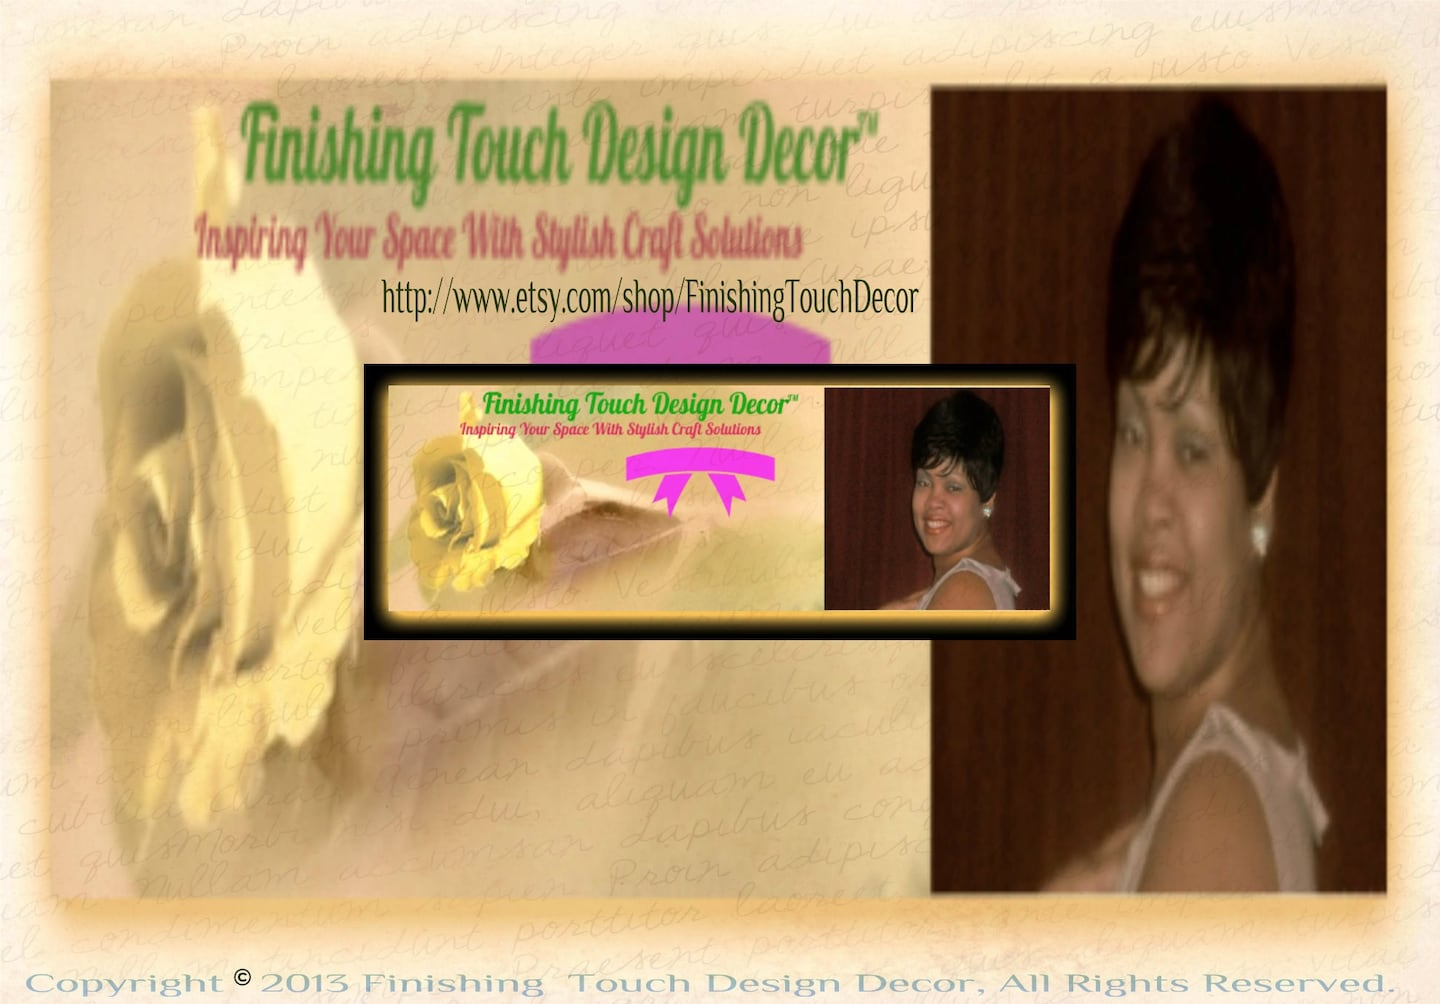 Finishing Touch Design Decor